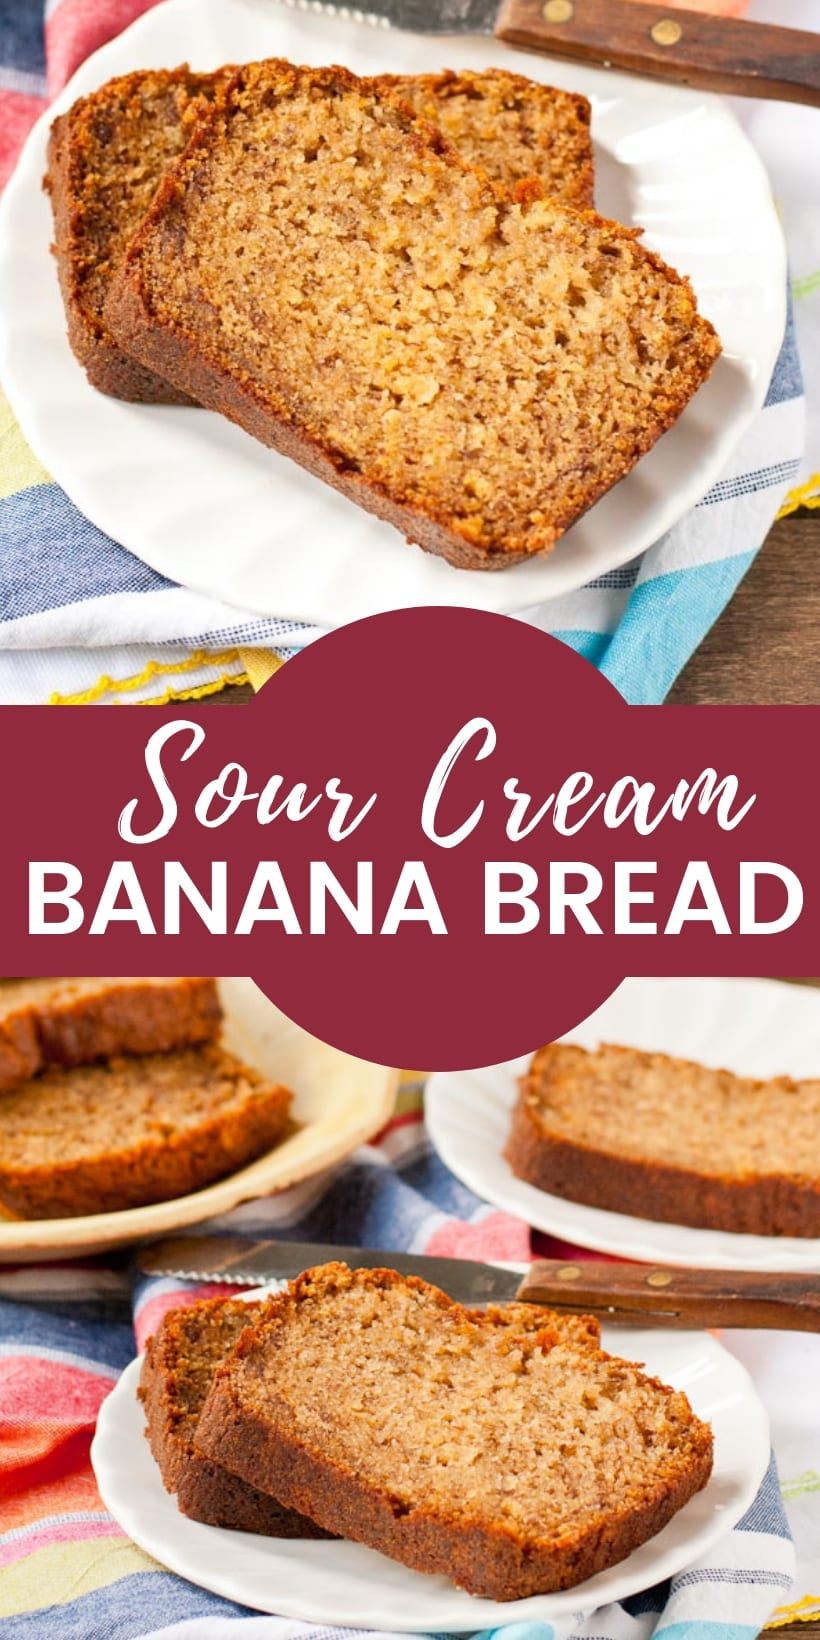 poster image showing slices of sour cream banana bread on a plate with recipe title in center